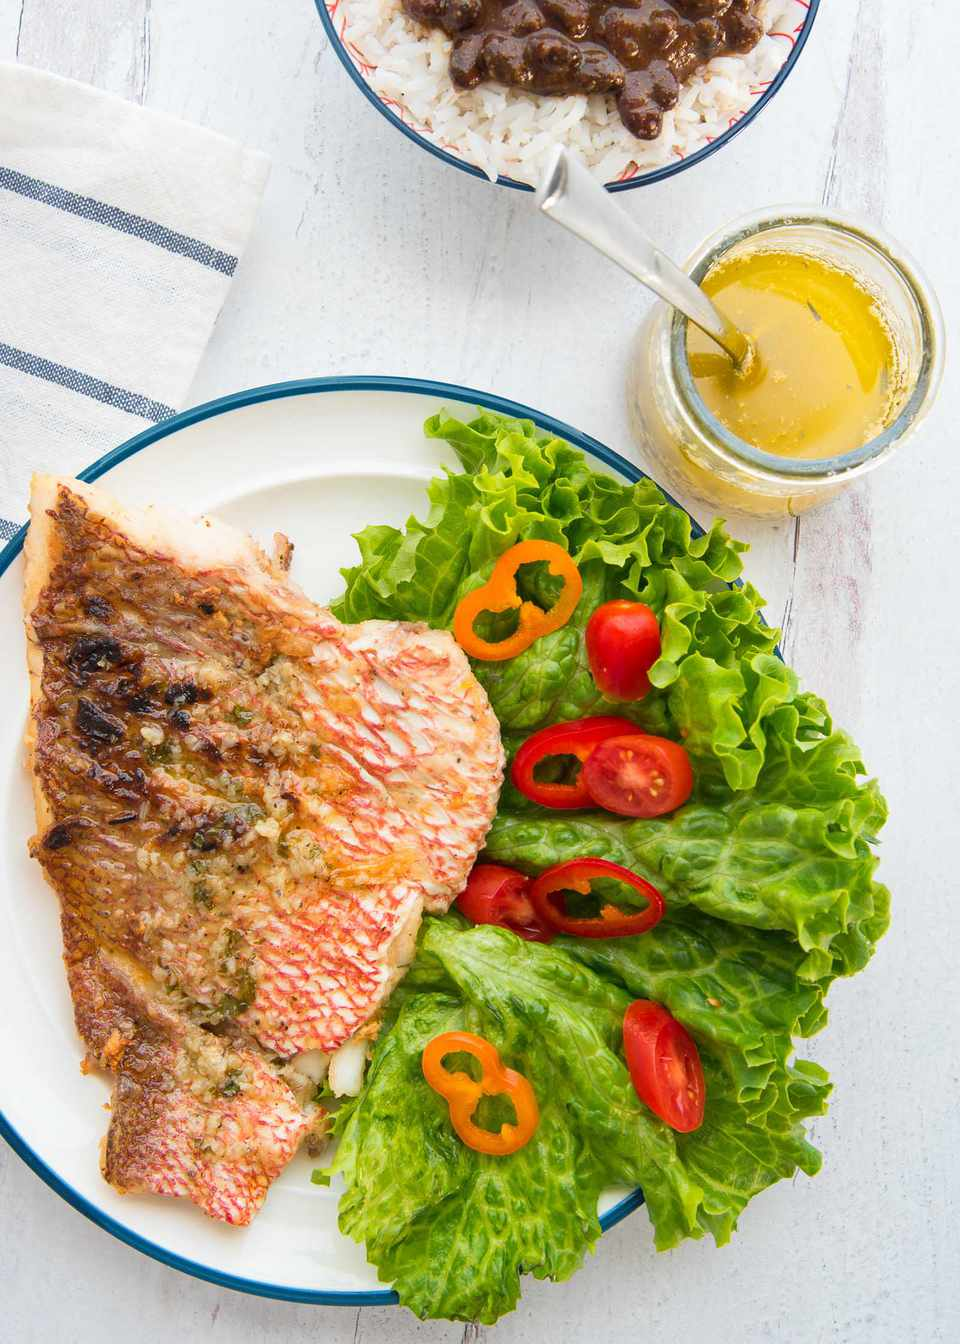 Red snapper with garlic sauce is on a white plate with a blue stripe around the edge. The snapper is crispy and takes up half of the plate. A green leafy salad with red and orange peppers is on the other side of the plate. A jar of garlic sauce is to the upper right of the salad. A bowl of rice and beans with cilantro is to the upper left of the jar of sauce. A striped napkin are to the left of the snapper.